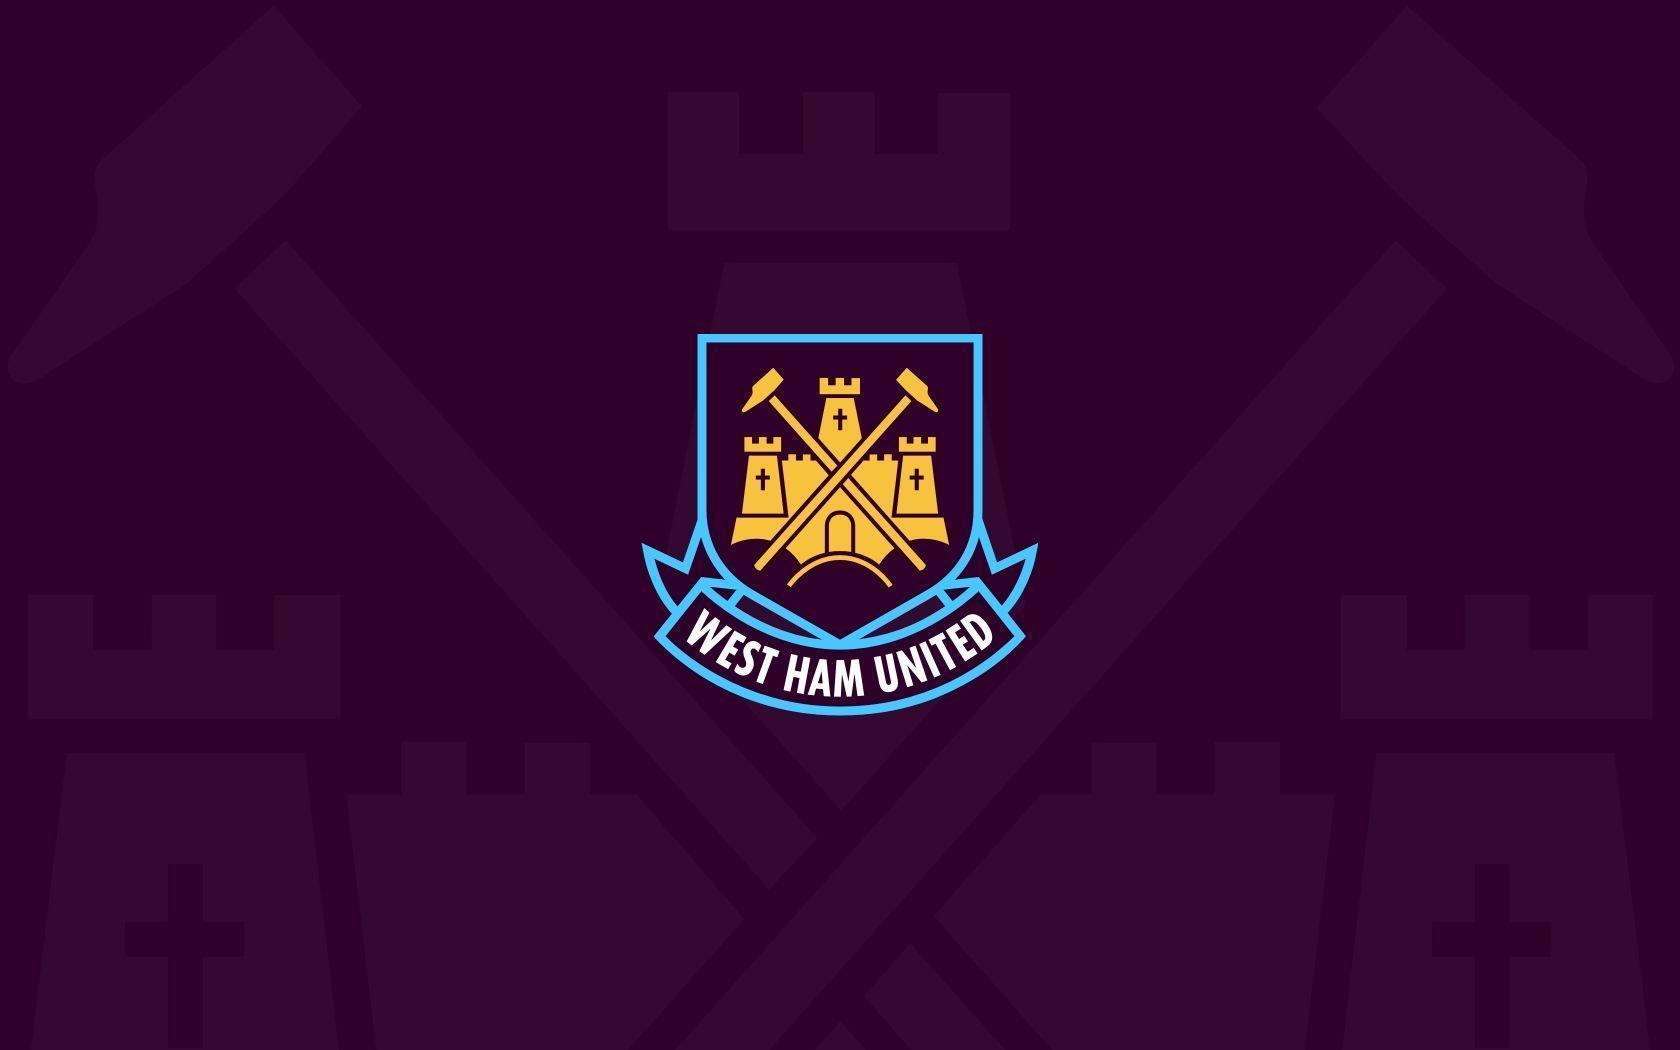 West Ham United F C Wallpapers Hd Backgrounds 88 images in 1680x1050